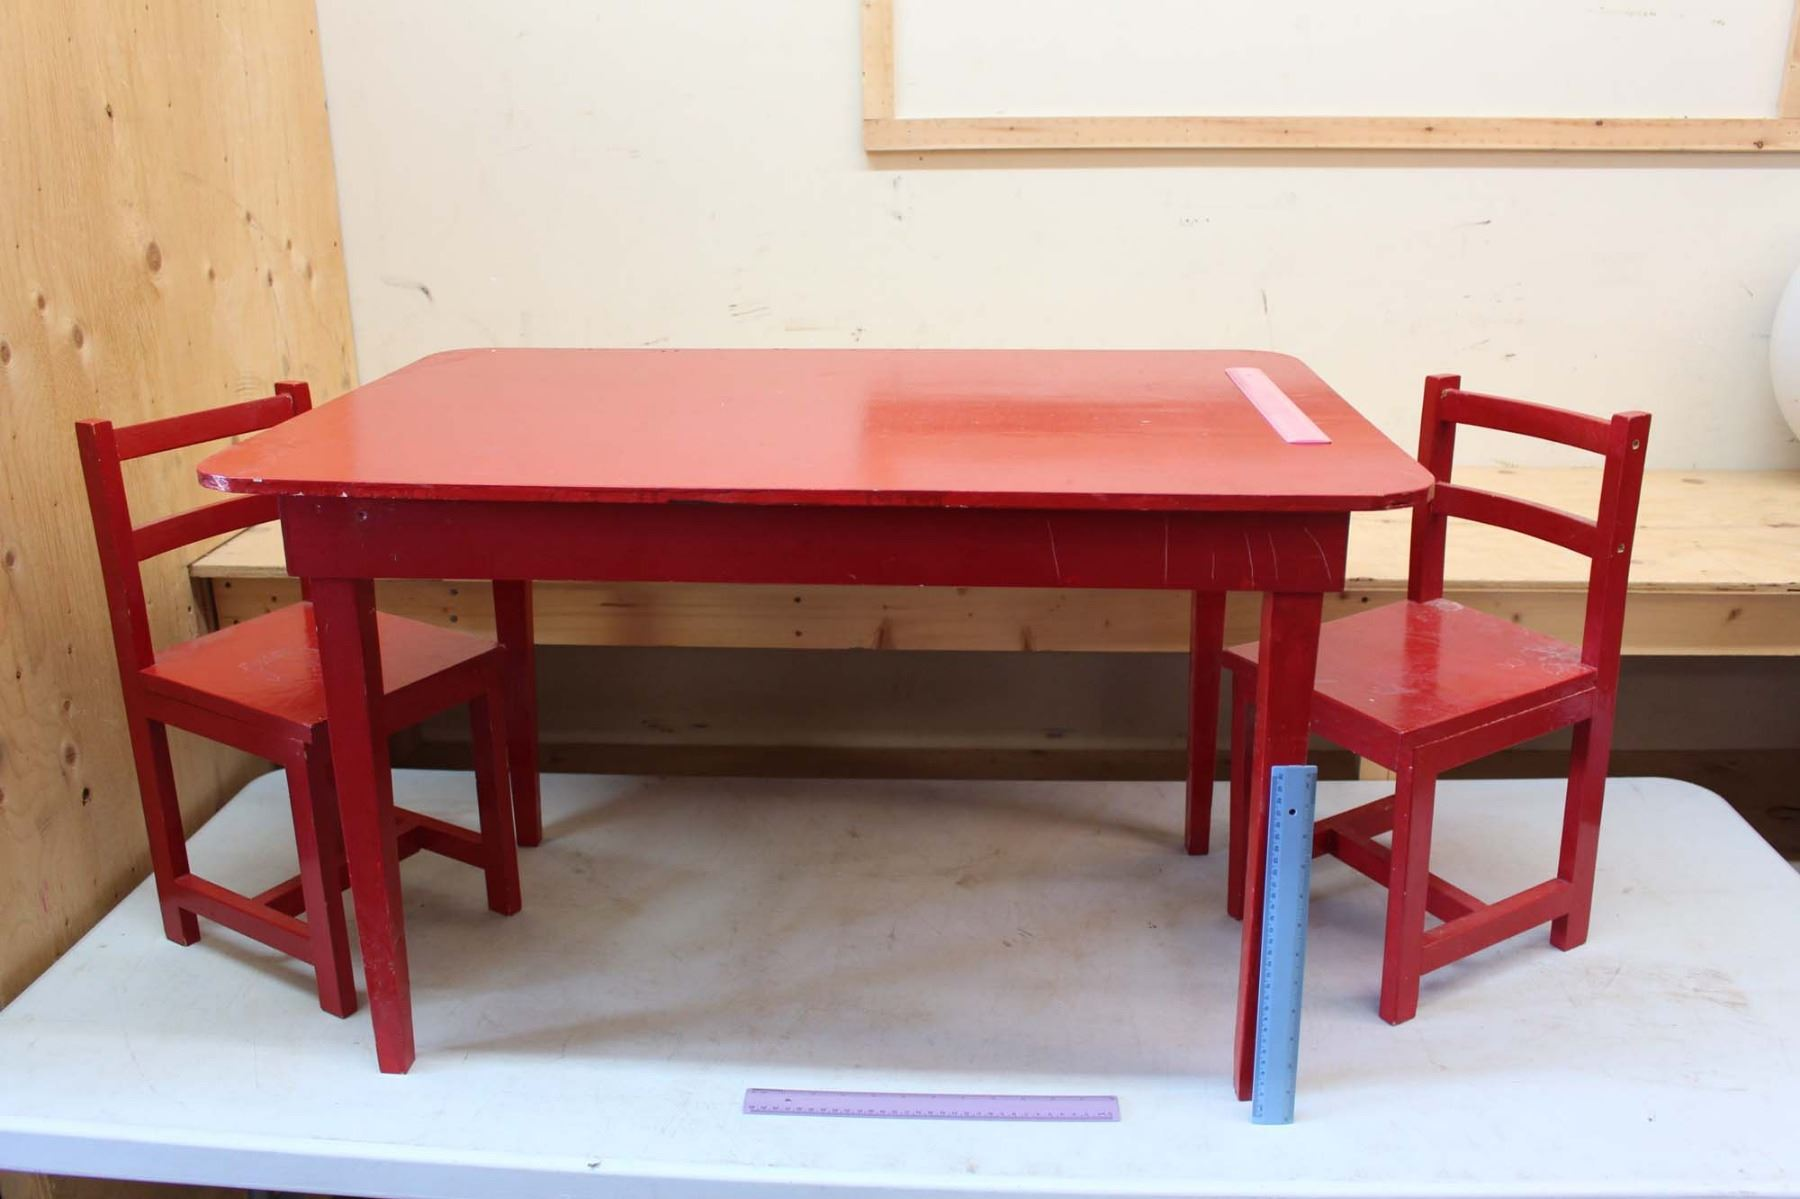 Vintage Kids Table W Chairs 2 Table 35 X24 X22